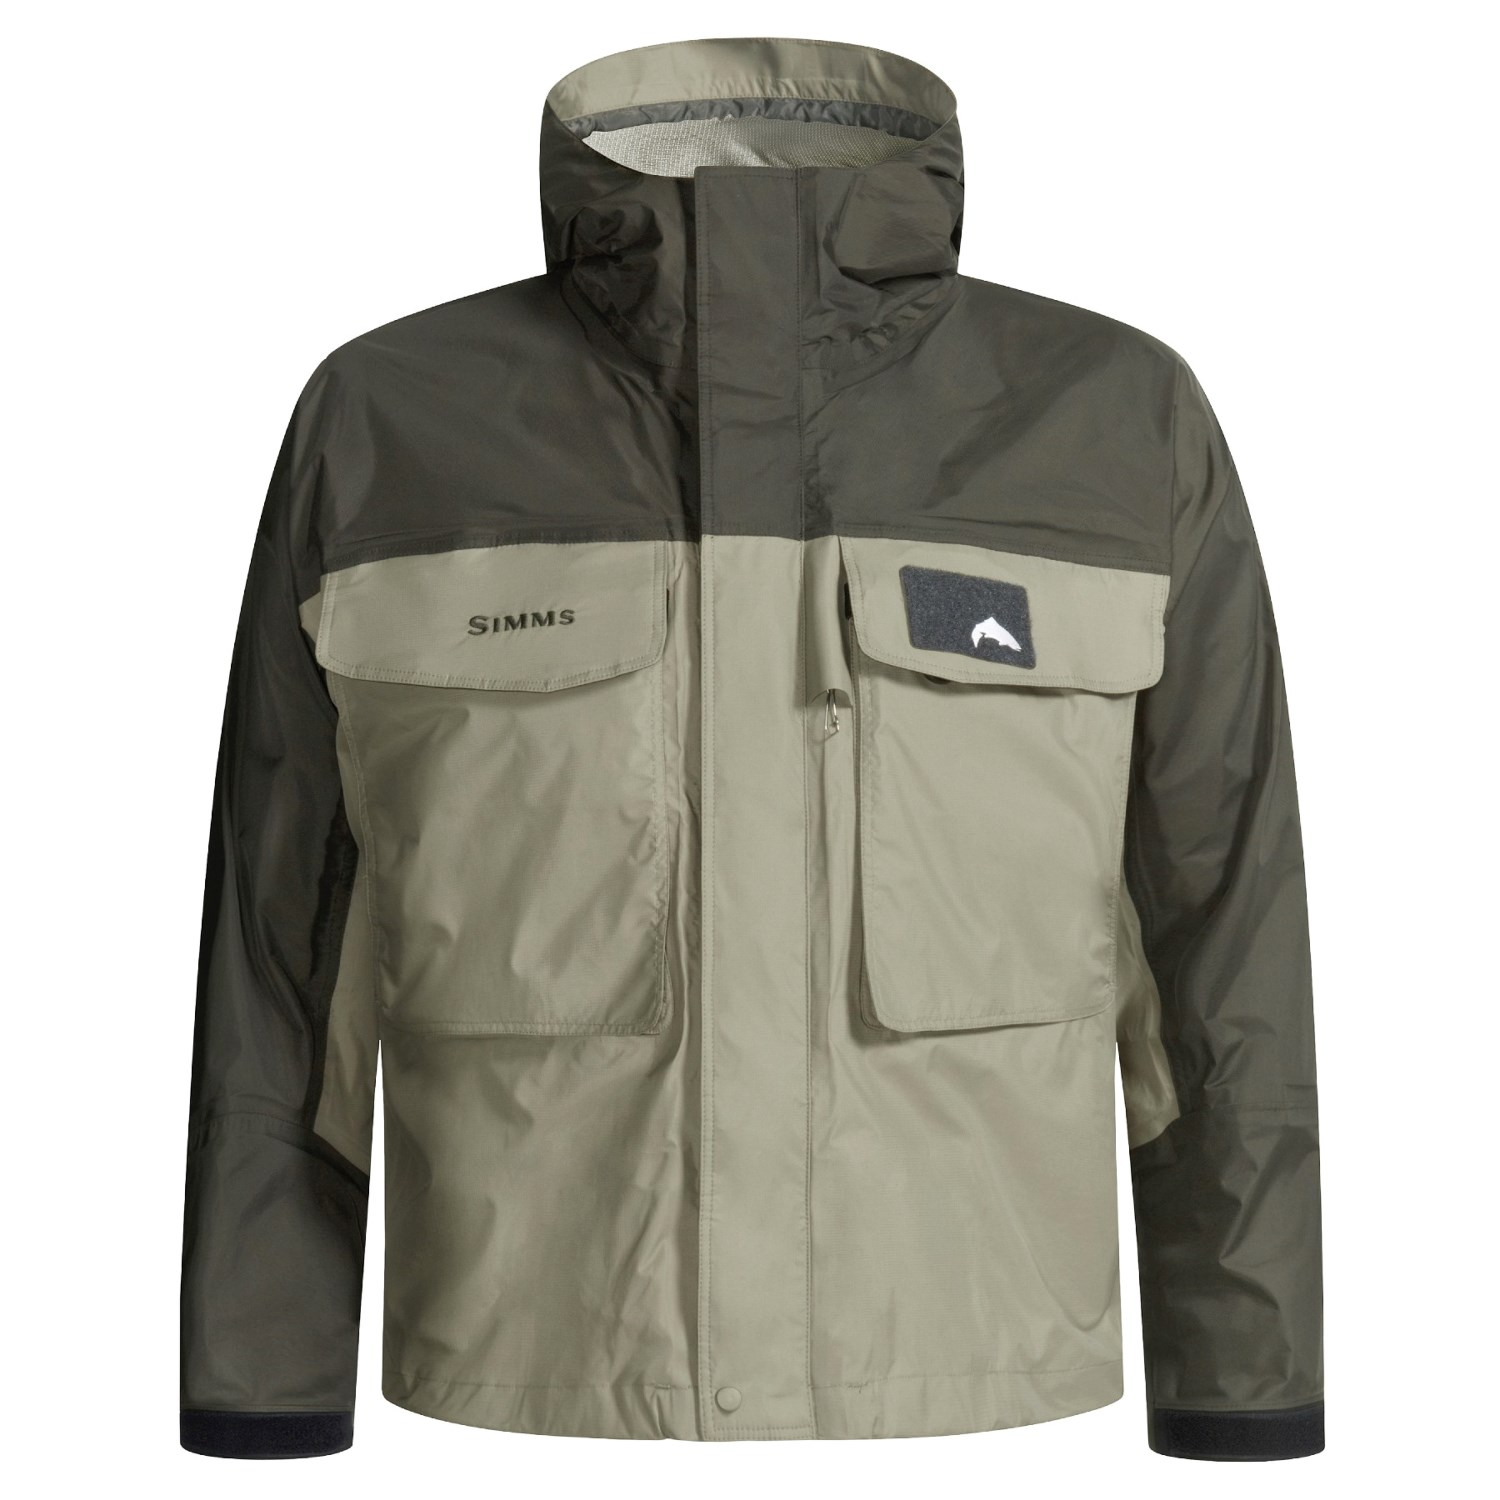 Simms freestone fly fishing shell jacket for men 1632y for Fly fishing gear closeouts